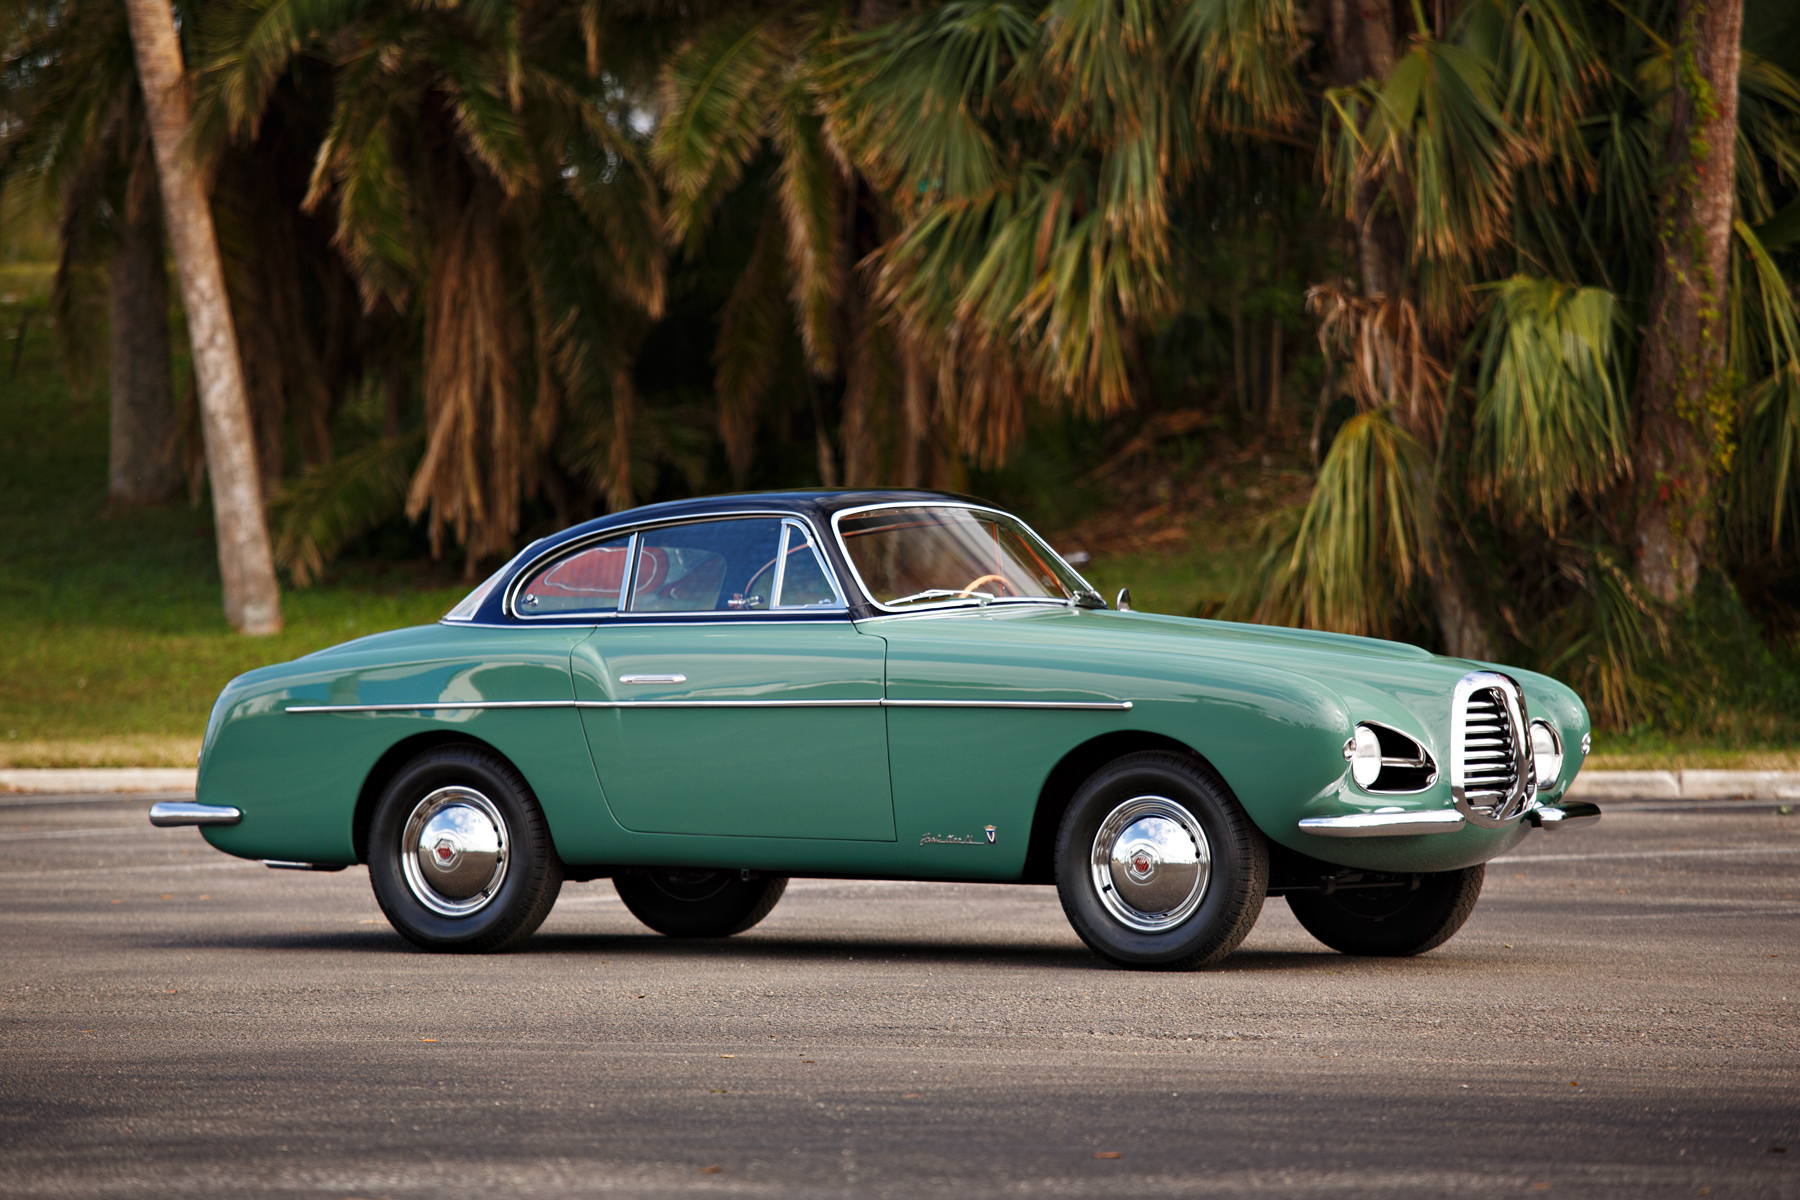 1953 Fiat 1100 Coupe by Vignale